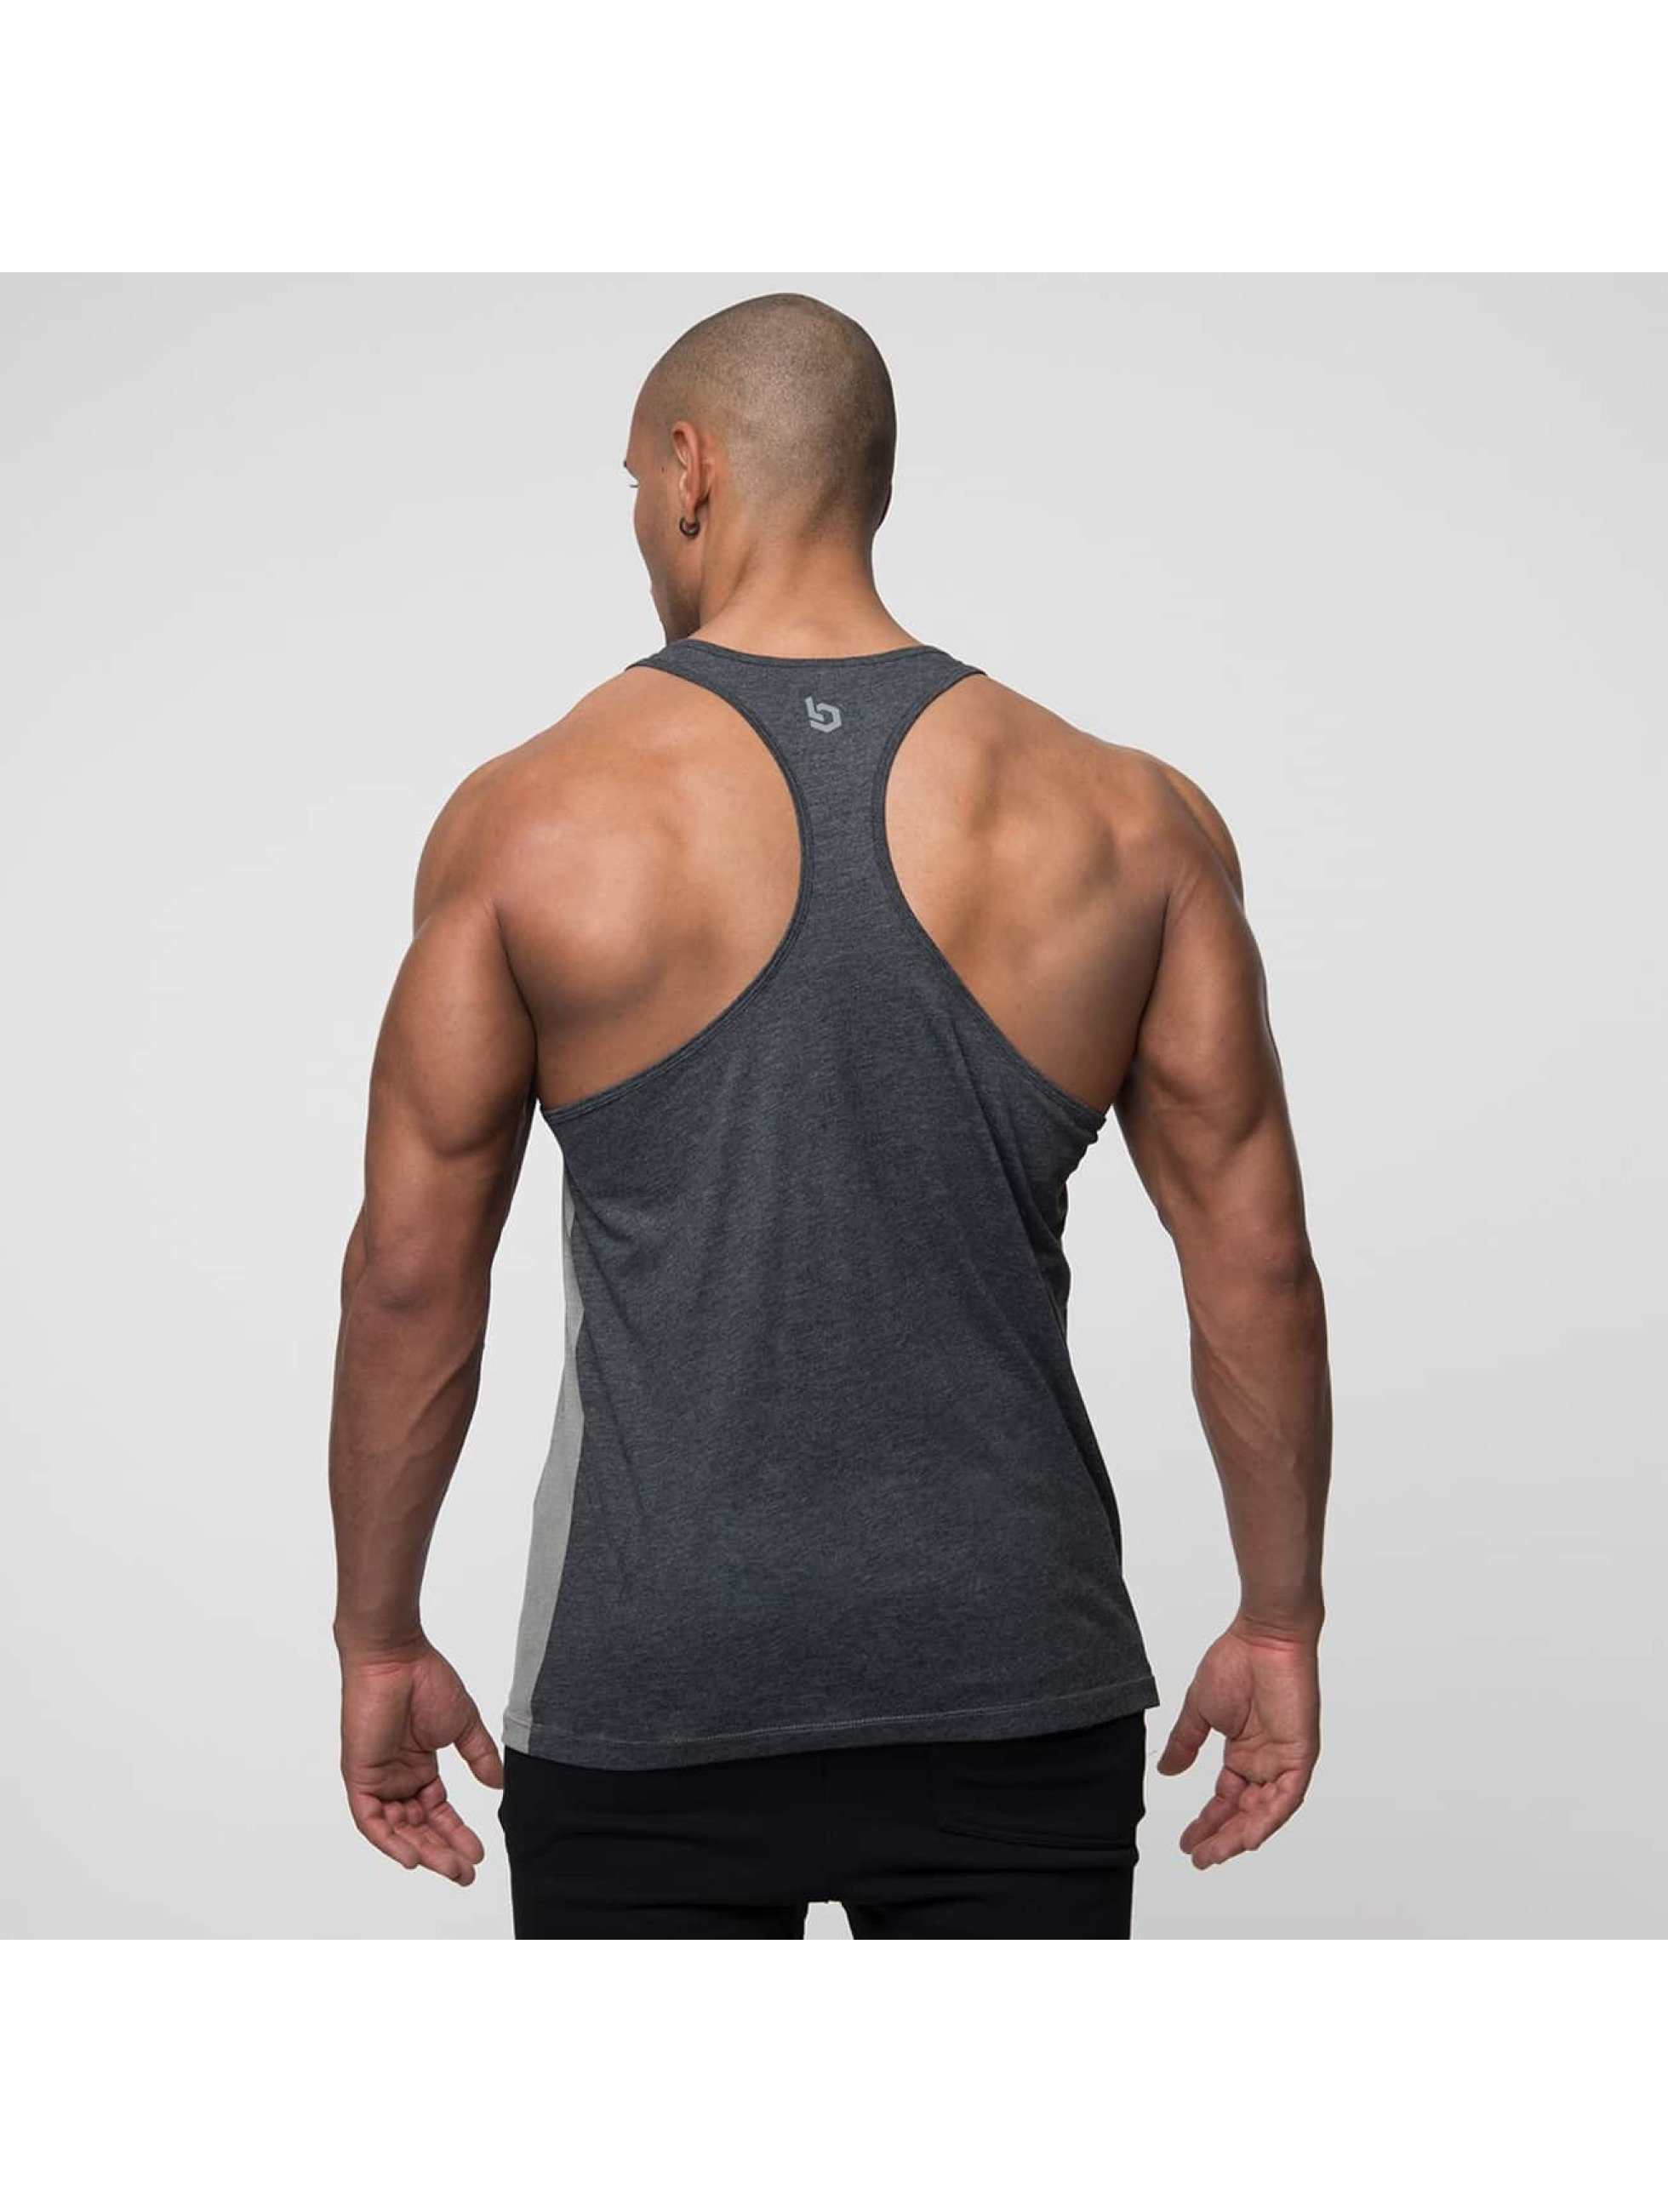 Beyond Limits Tank Tops Selected Stringer grey